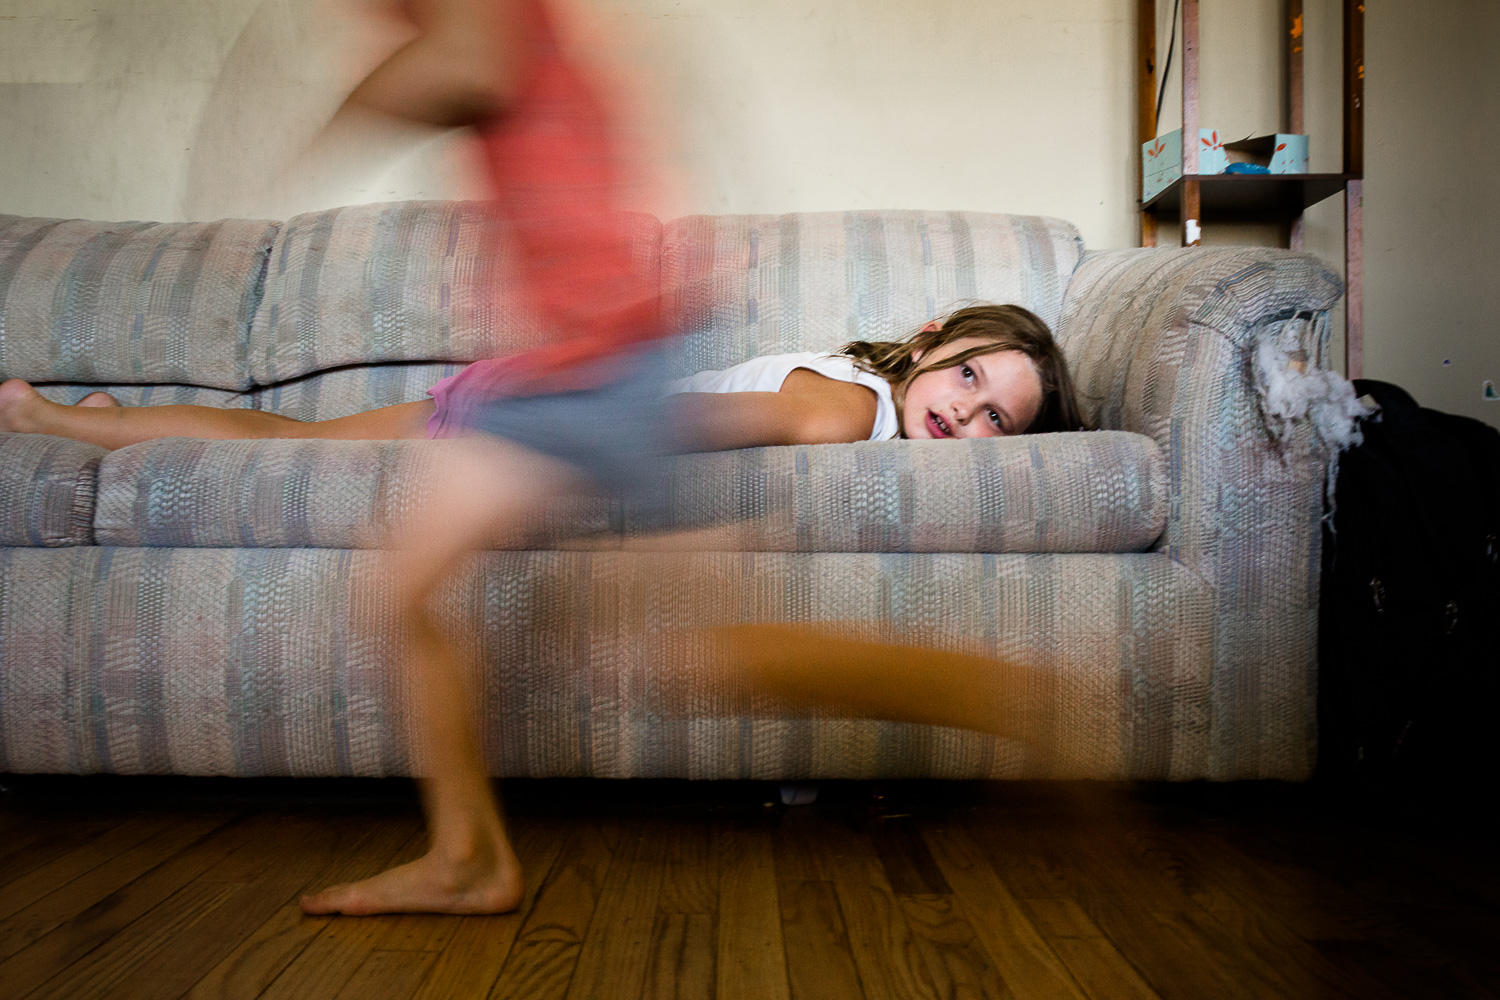 Boy in blur of motion running past sister laying on couch.